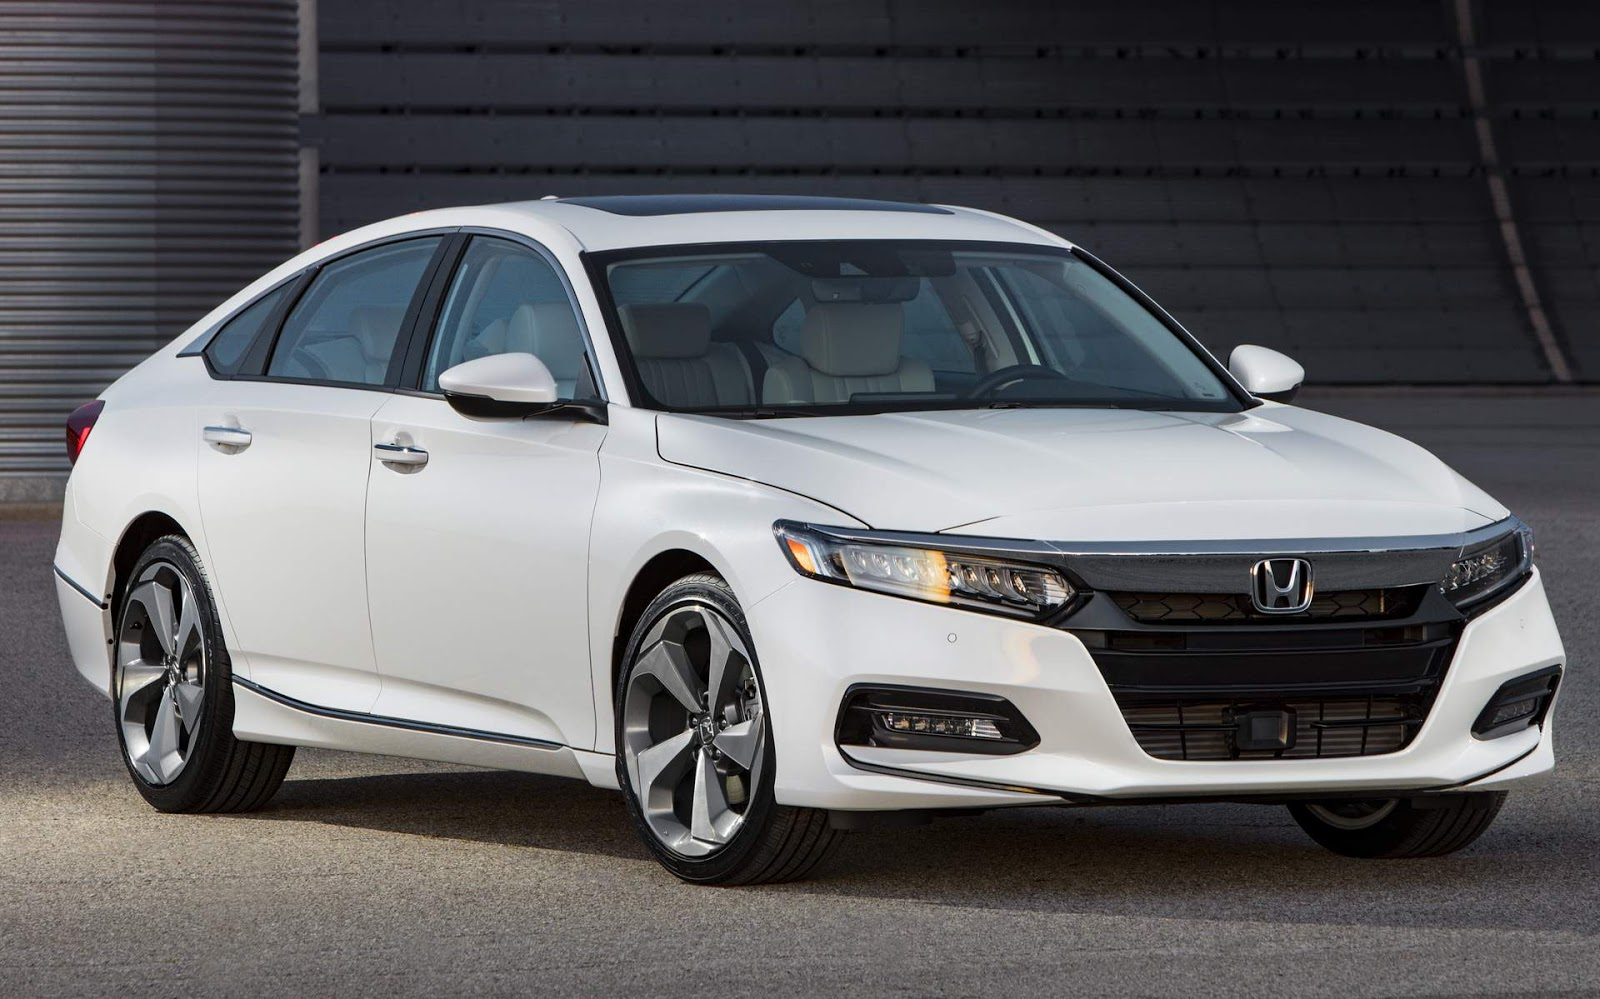 Novo honda accord 2018 fotos e especifica es oficiais for New honda accord 2018